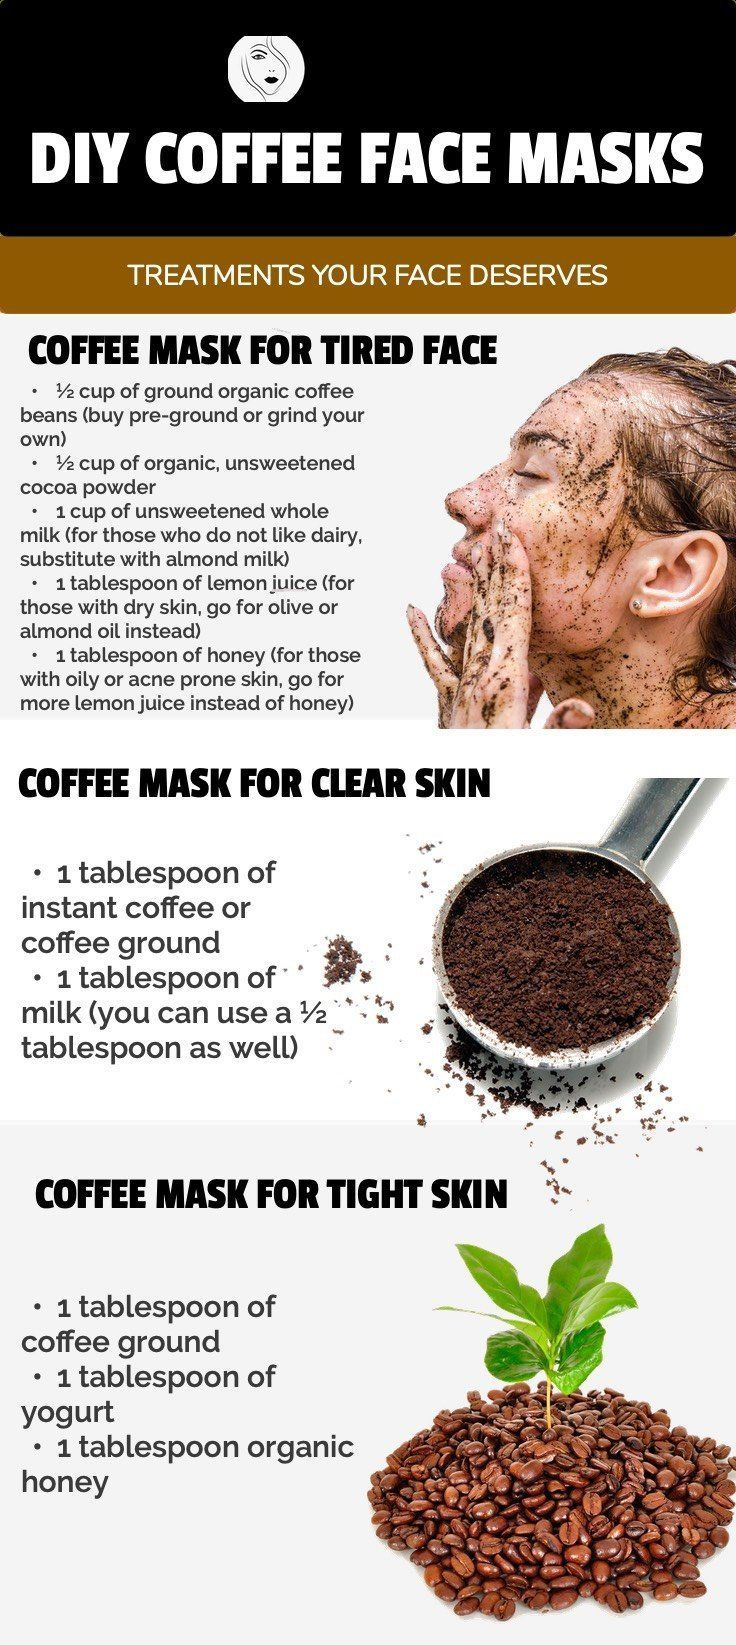 Top 5 DIY Coffee Face Mask Treatments Your Face Deserves -